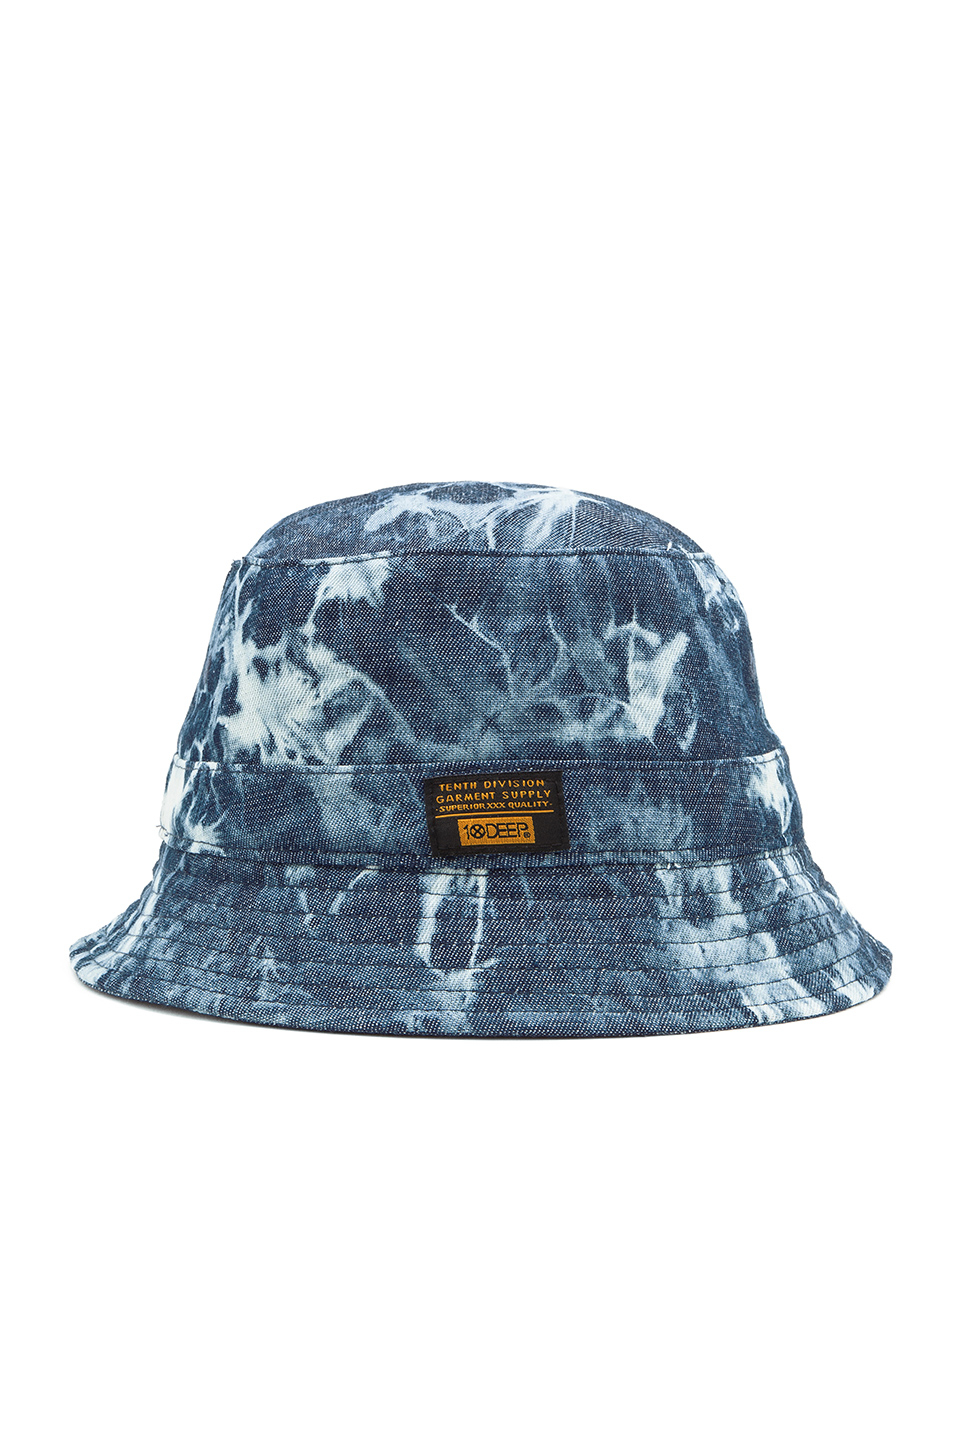 35de72b06ca Lyst - 10.deep Thompson s Bucket Hat in Blue for Men